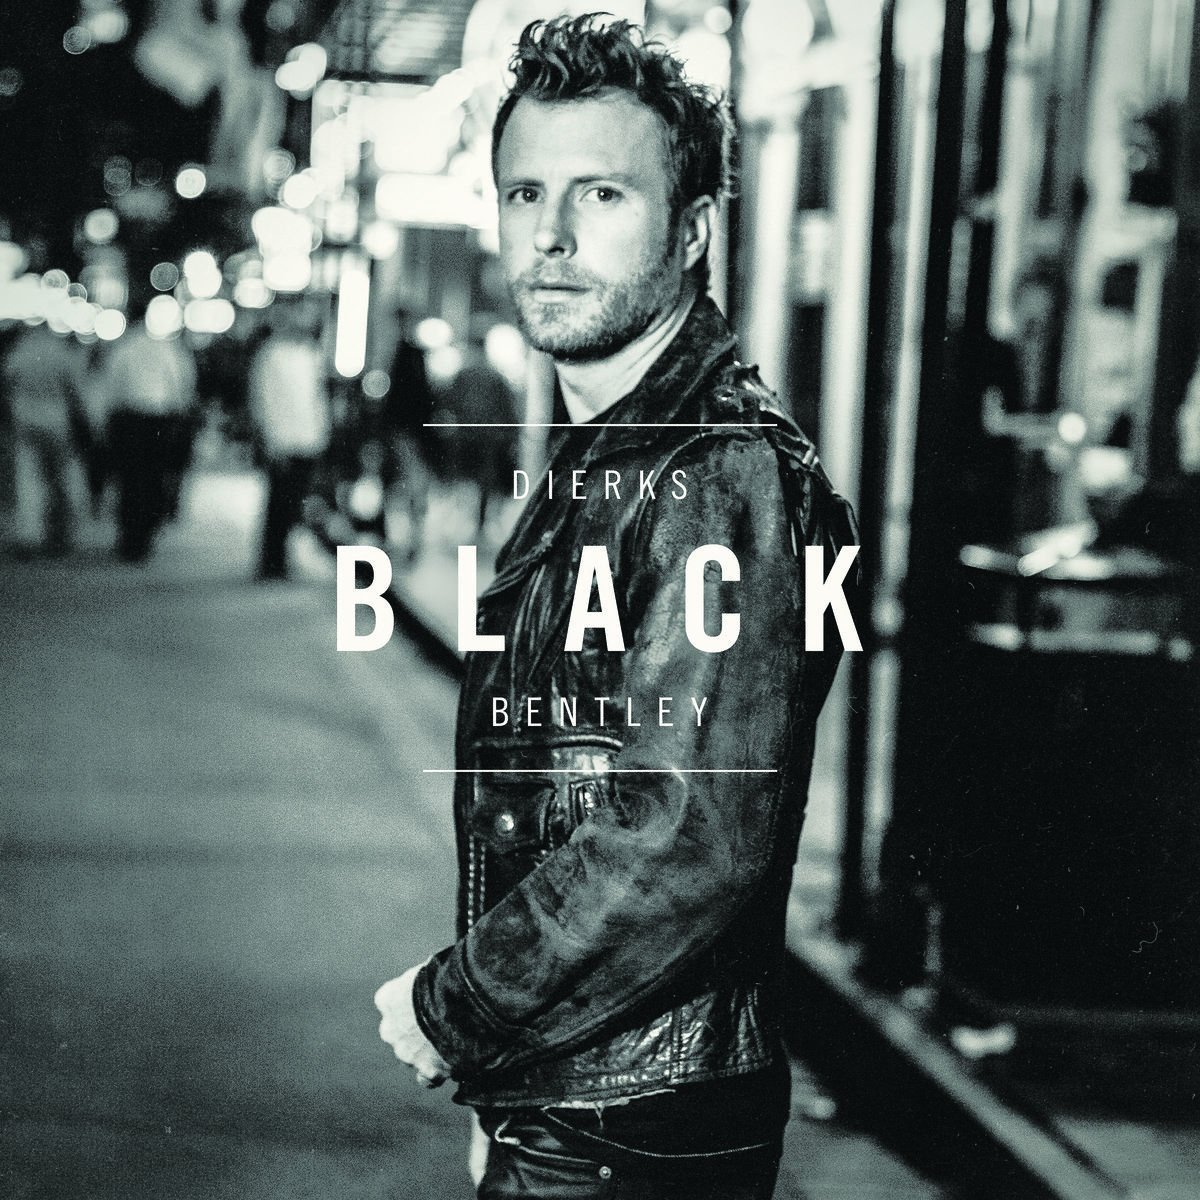 Dierks Bentley: Black